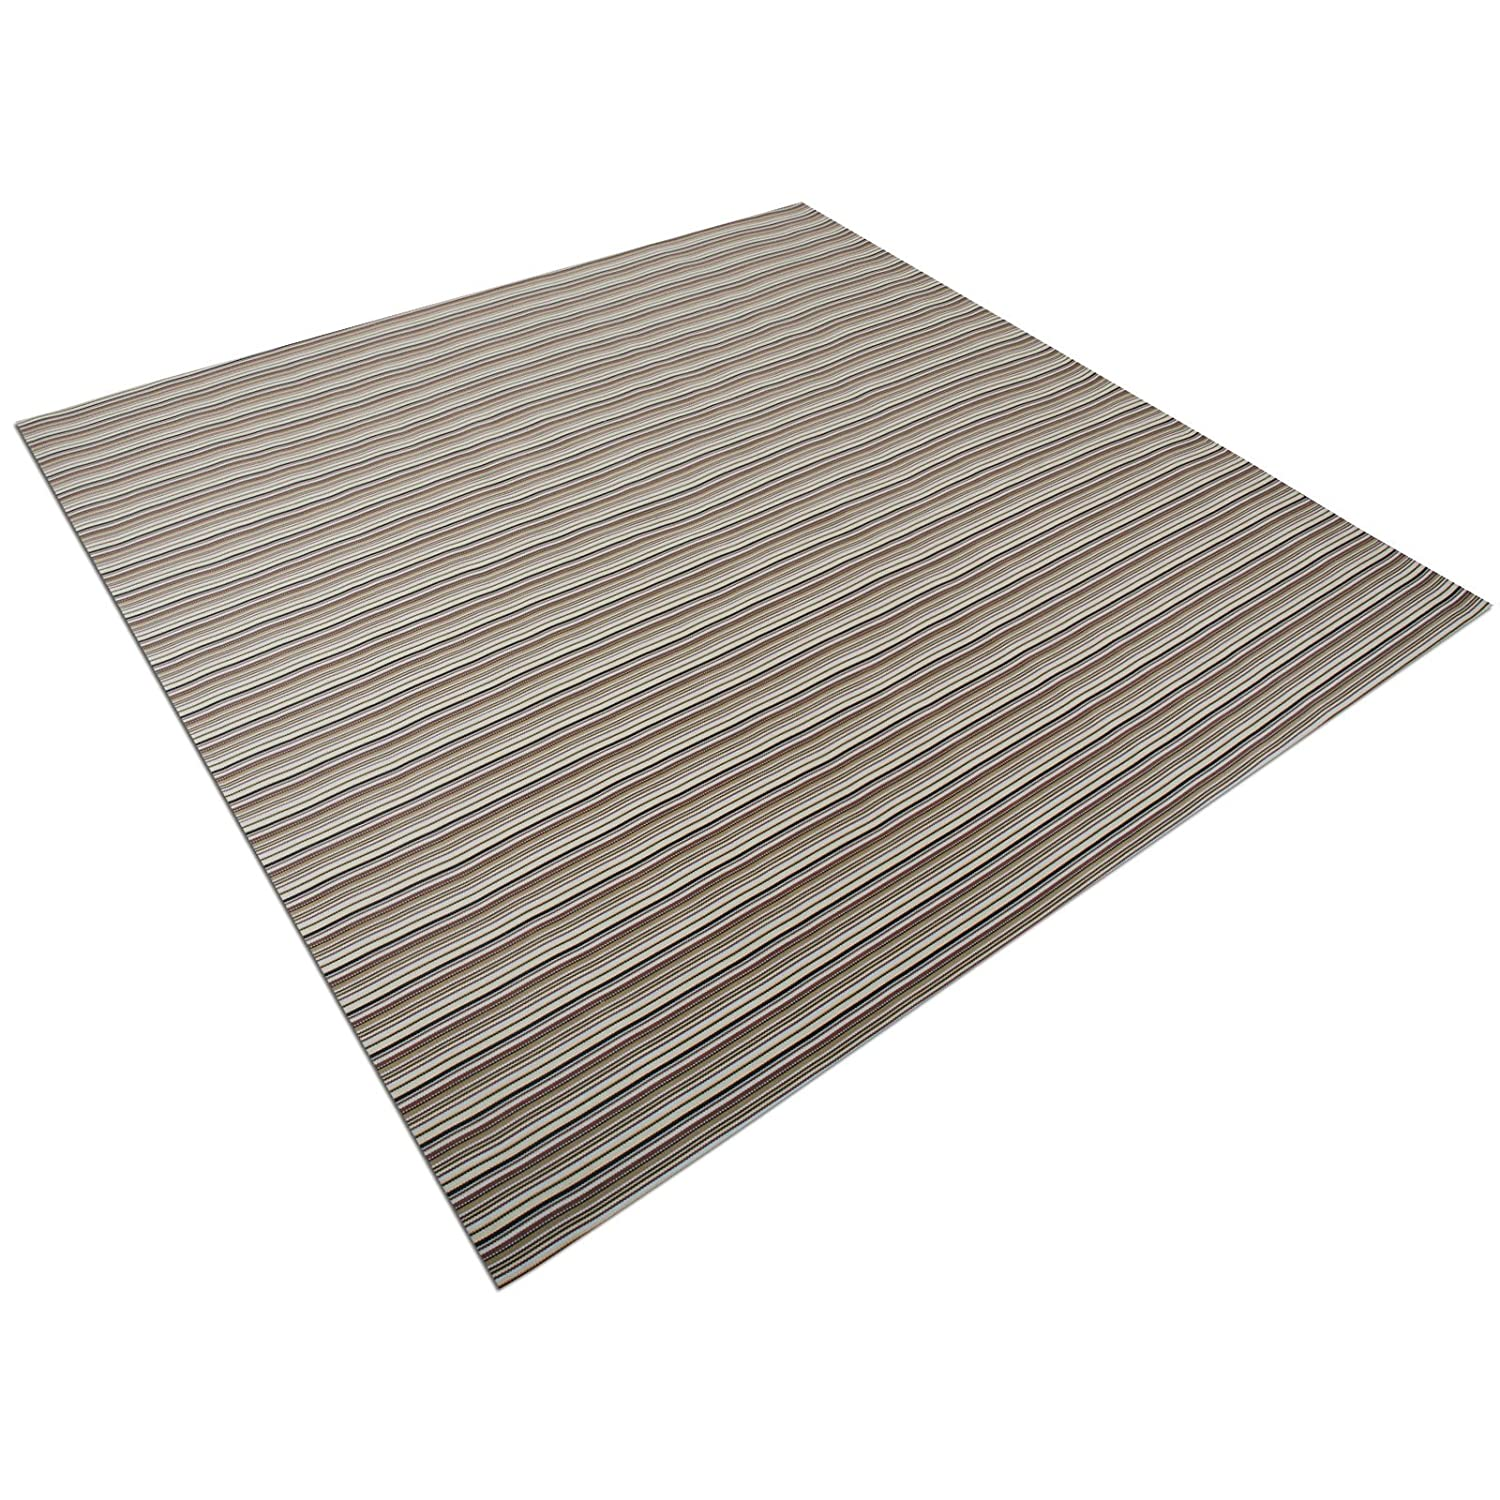 casa pura Asti Brown Striped Protective Floor Mat | Hard Floors or Low Pile Carpets | 90x120cm | 6 Sizes